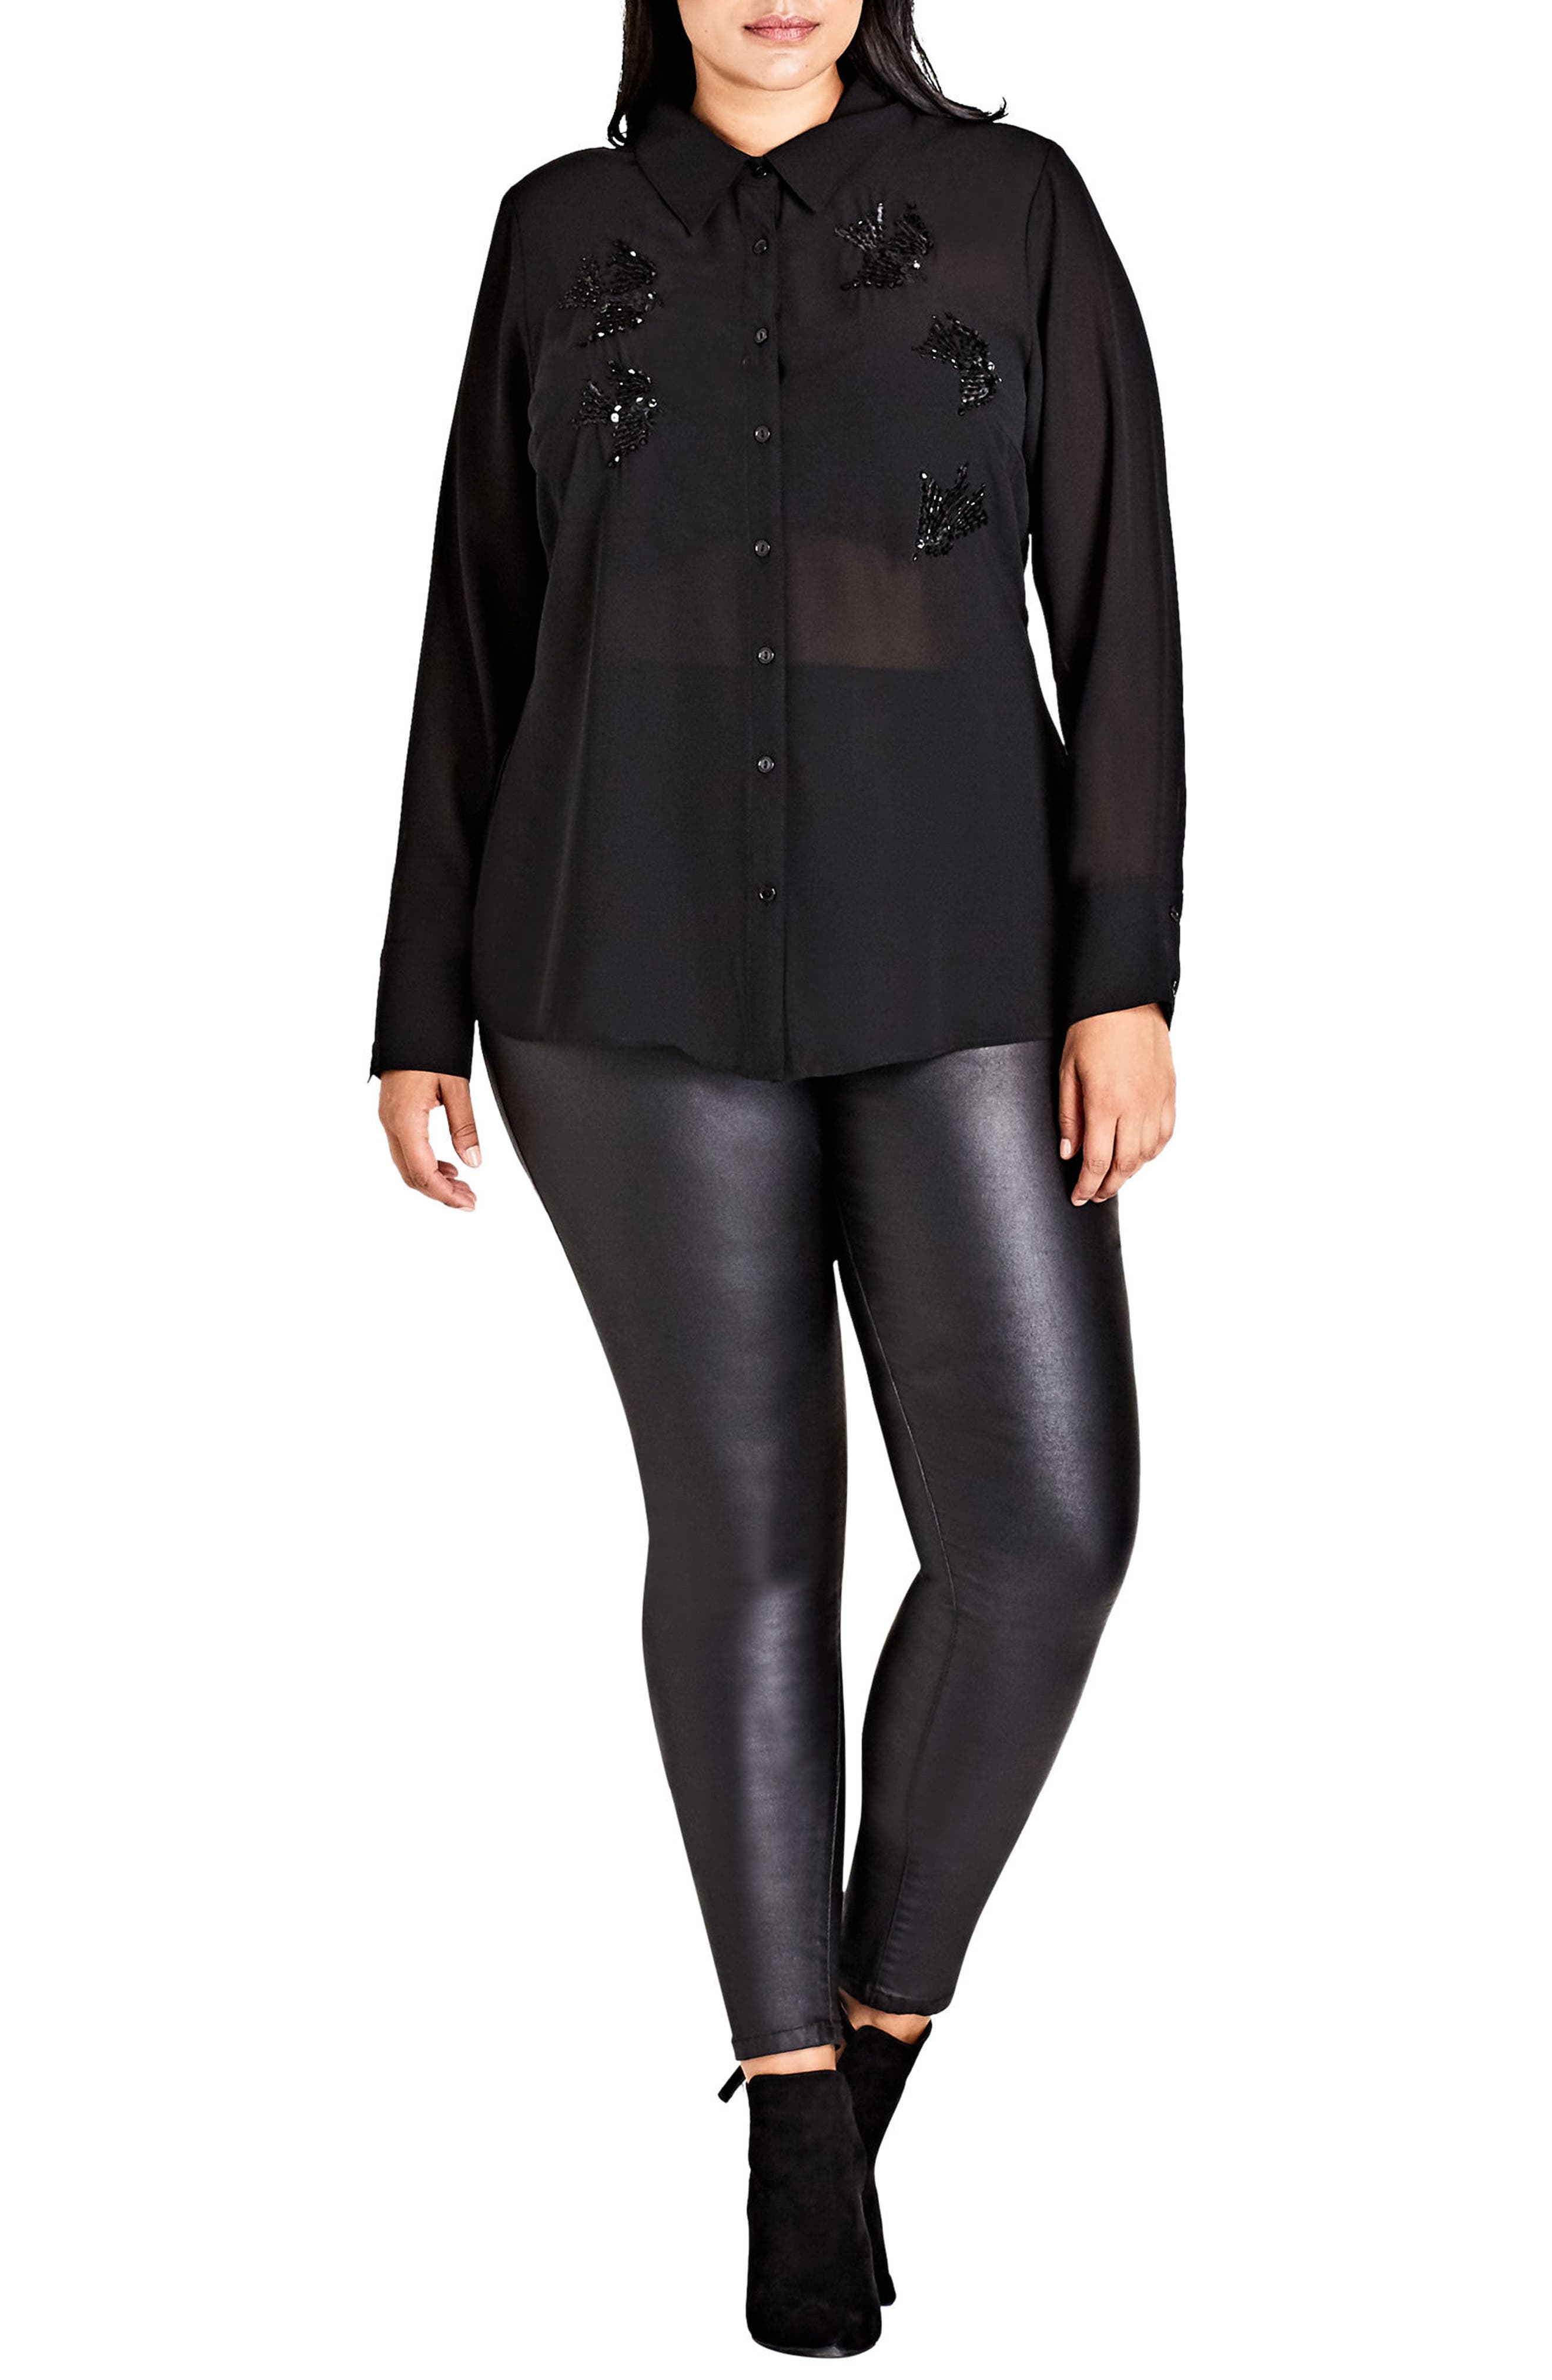 Alternate Image 1 Selected - City Chic Fly Away Embellished Sheer Shirt (Plus Size)